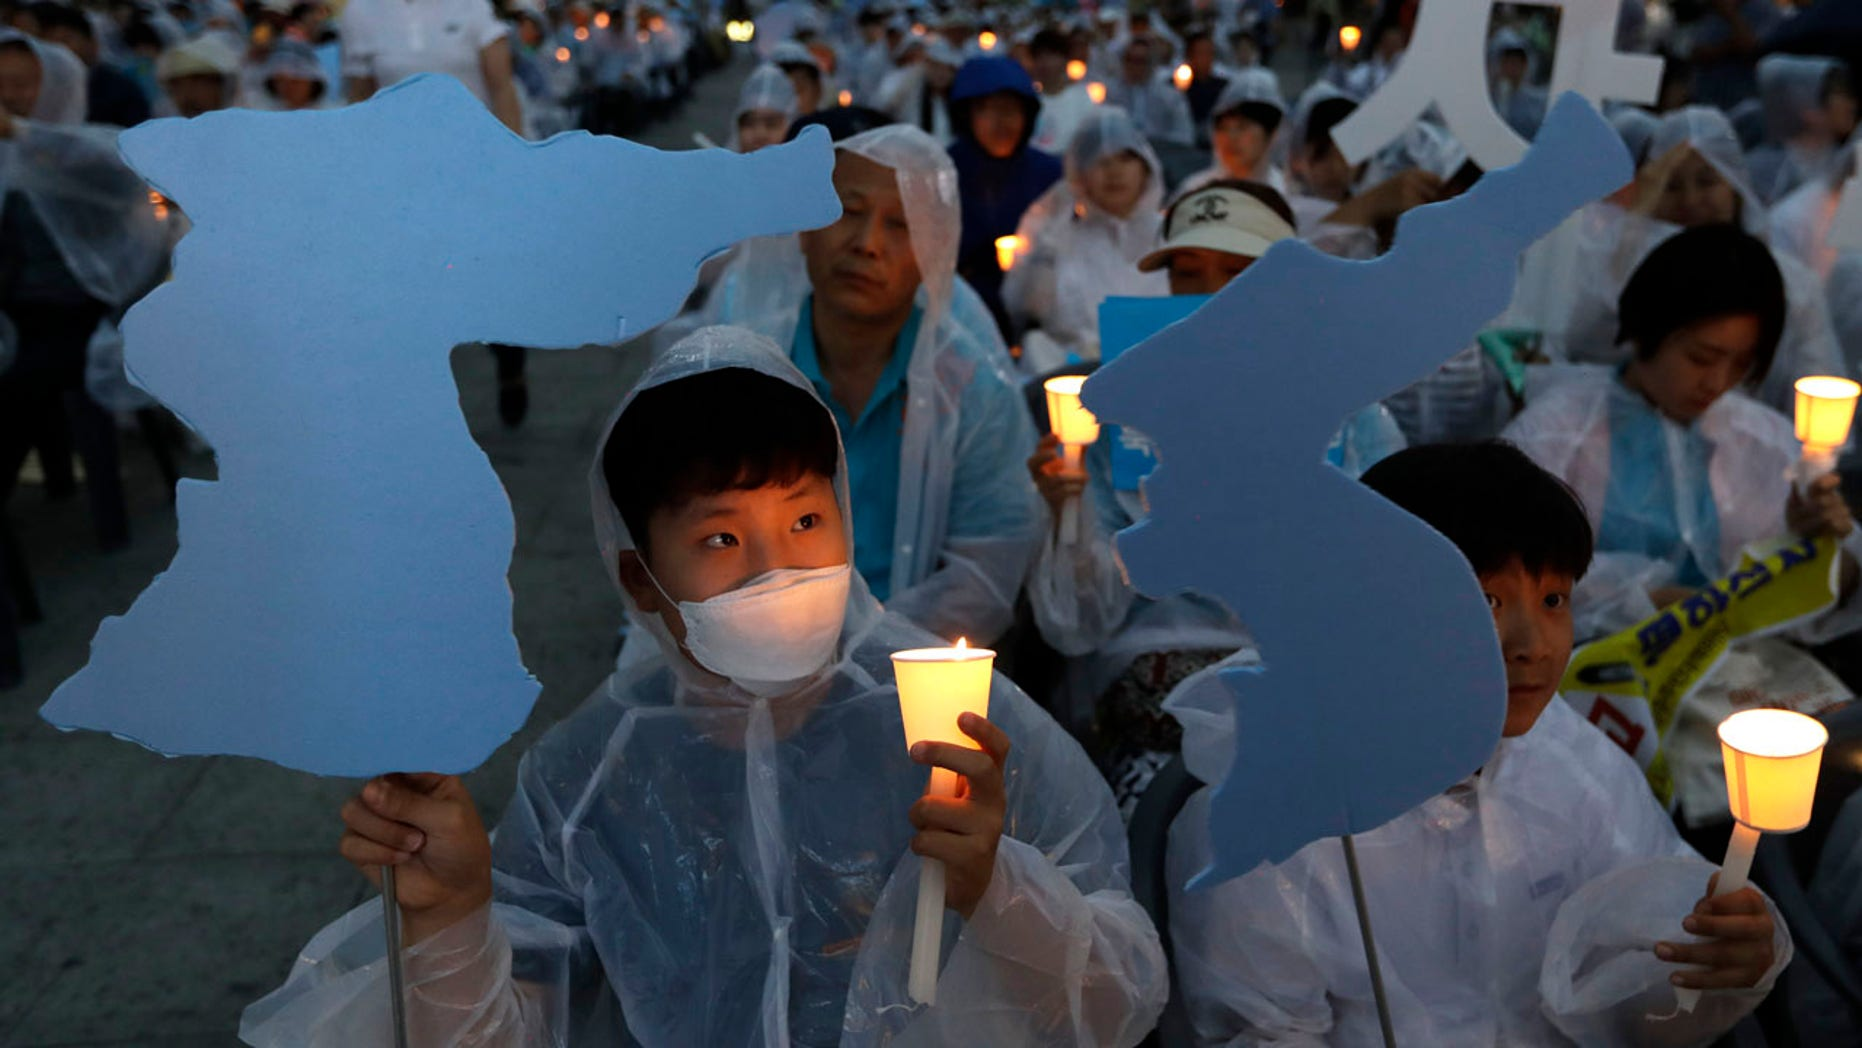 Participants hold candles and cardboards cutout of the map of Korean peninsula during a rally wishing for a successful summit between U.S. President Donald Trump and North Korea's leader Kim Jong Un and peace on the Korea peninsular near the U.S. embassy in Seoul, South Korea, Saturday, June 9, 2018. A planned summit between Trump and Kim will be held in Singapore on June 12.